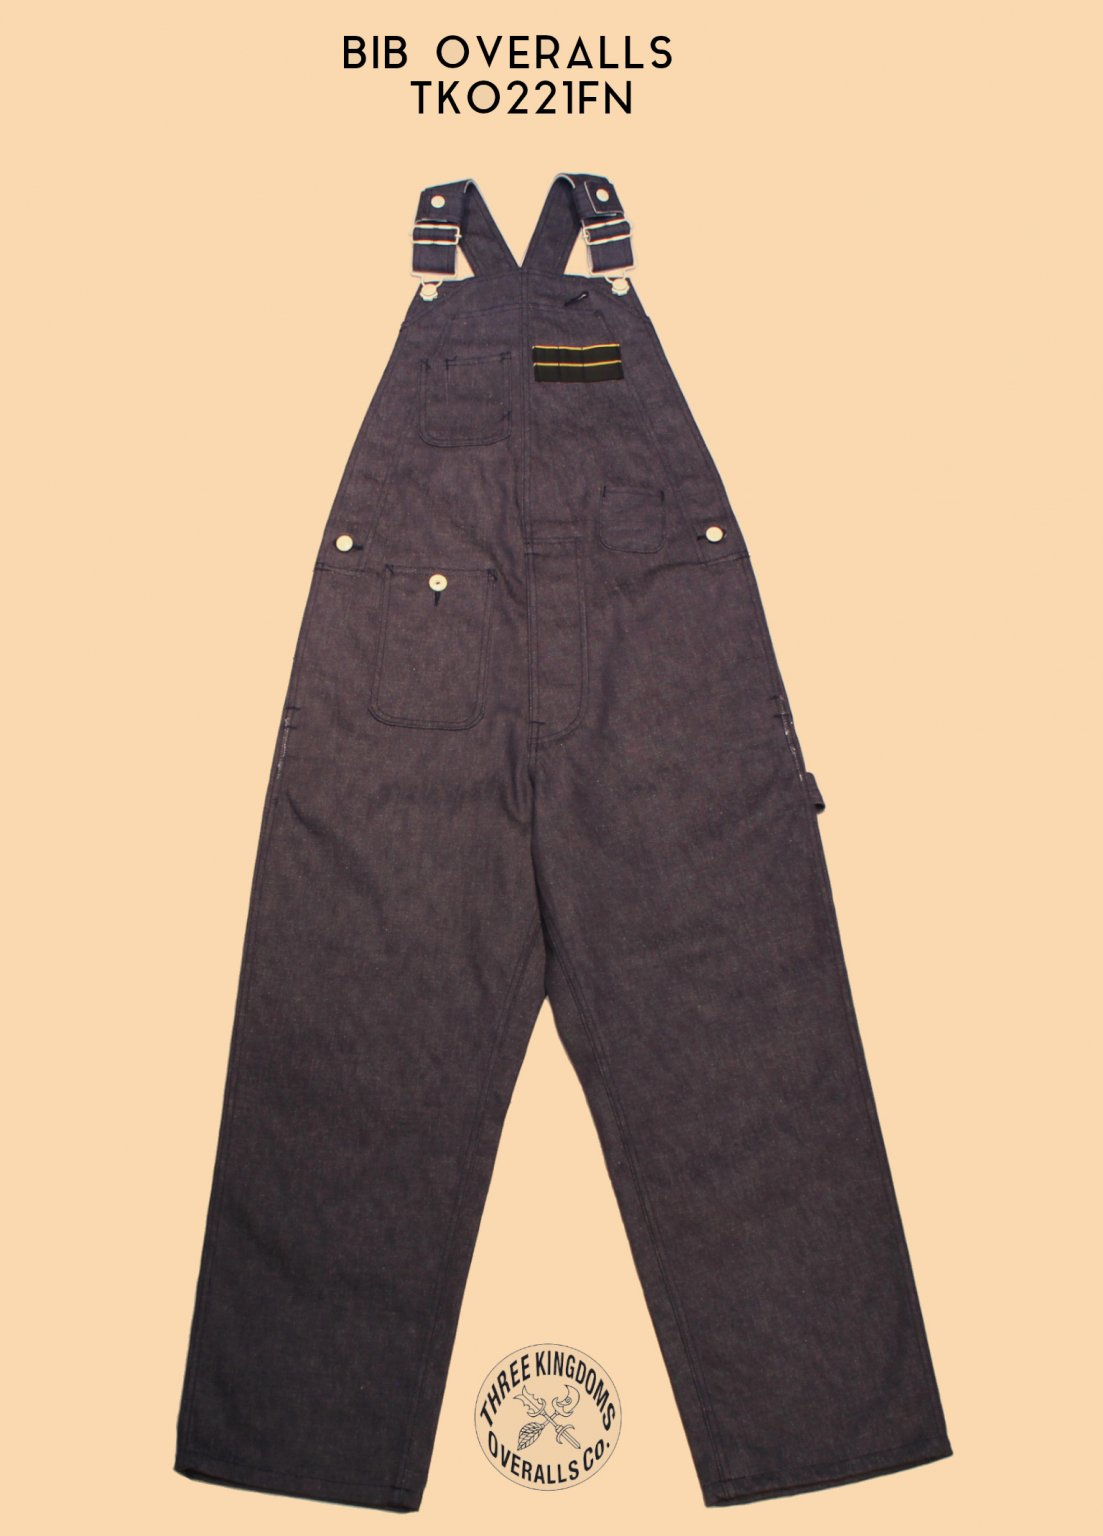 TKO221FN  BIB OVERALLS <img class='new_mark_img2' src='https://img.shop-pro.jp/img/new/icons14.gif' style='border:none;display:inline;margin:0px;padding:0px;width:auto;' />